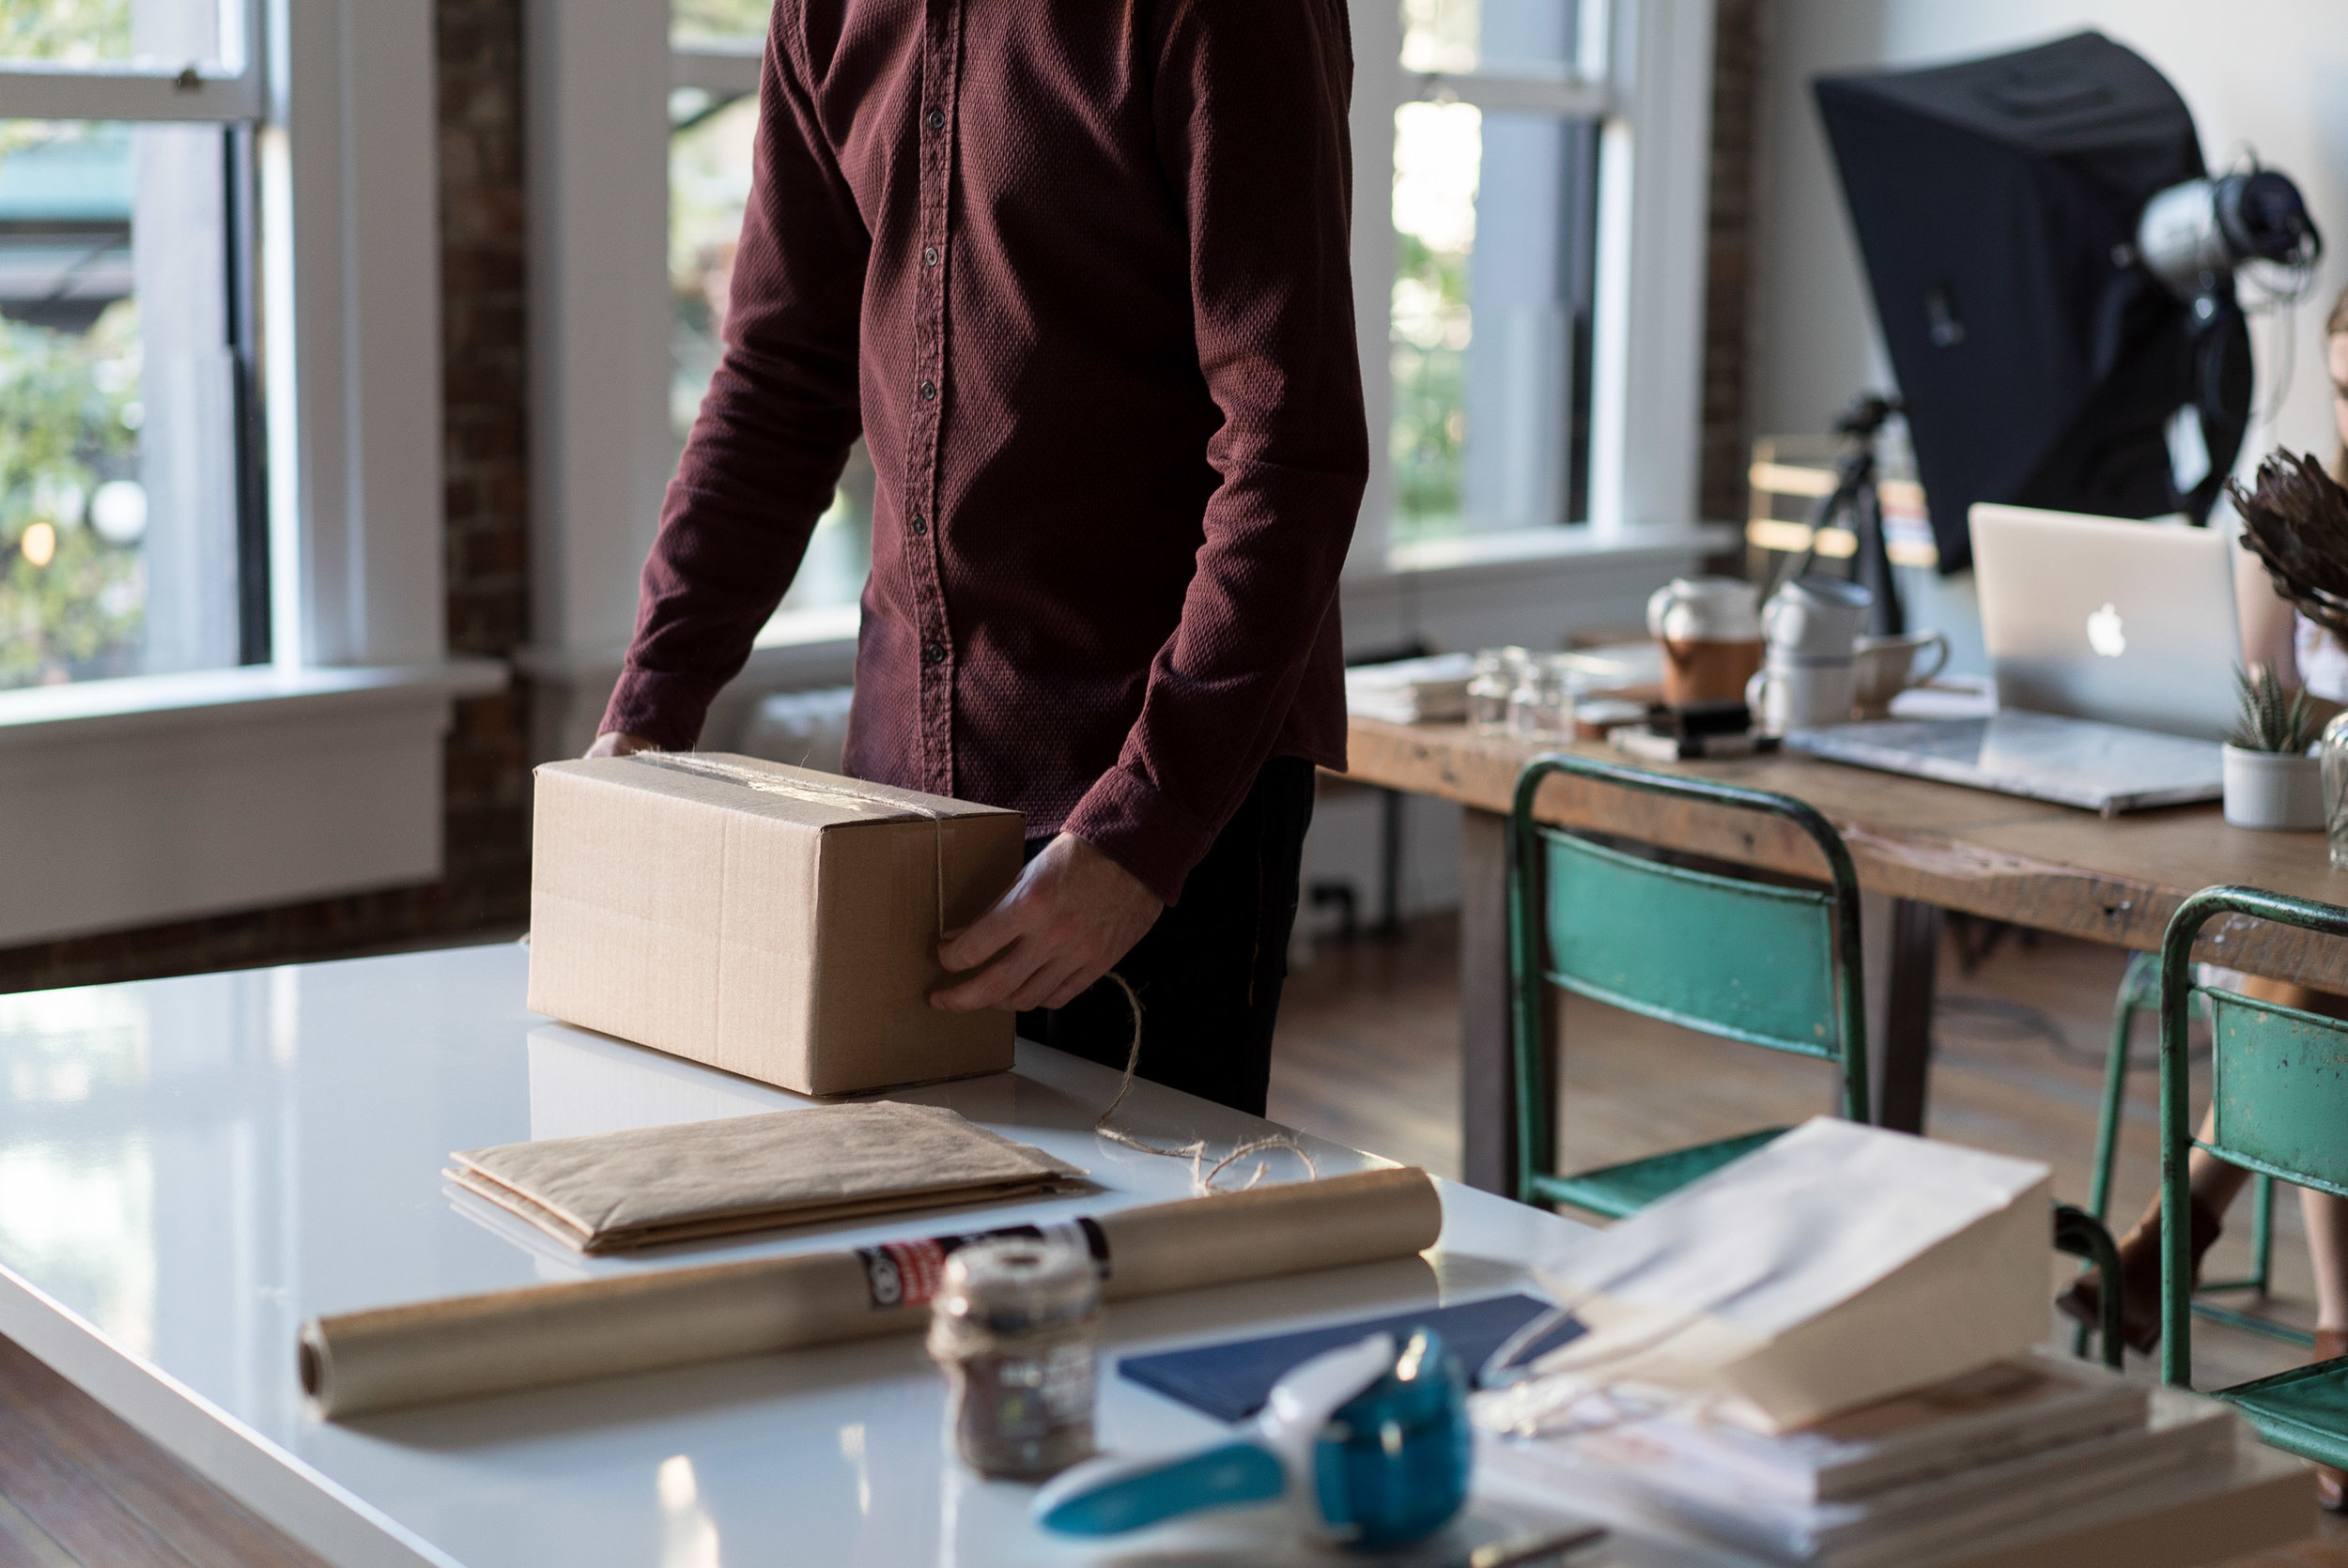 Does your business need fulfillment services? Let CITYMAIL help you set up a profitable workflow with fulfillment, warehousing, and distribution services.